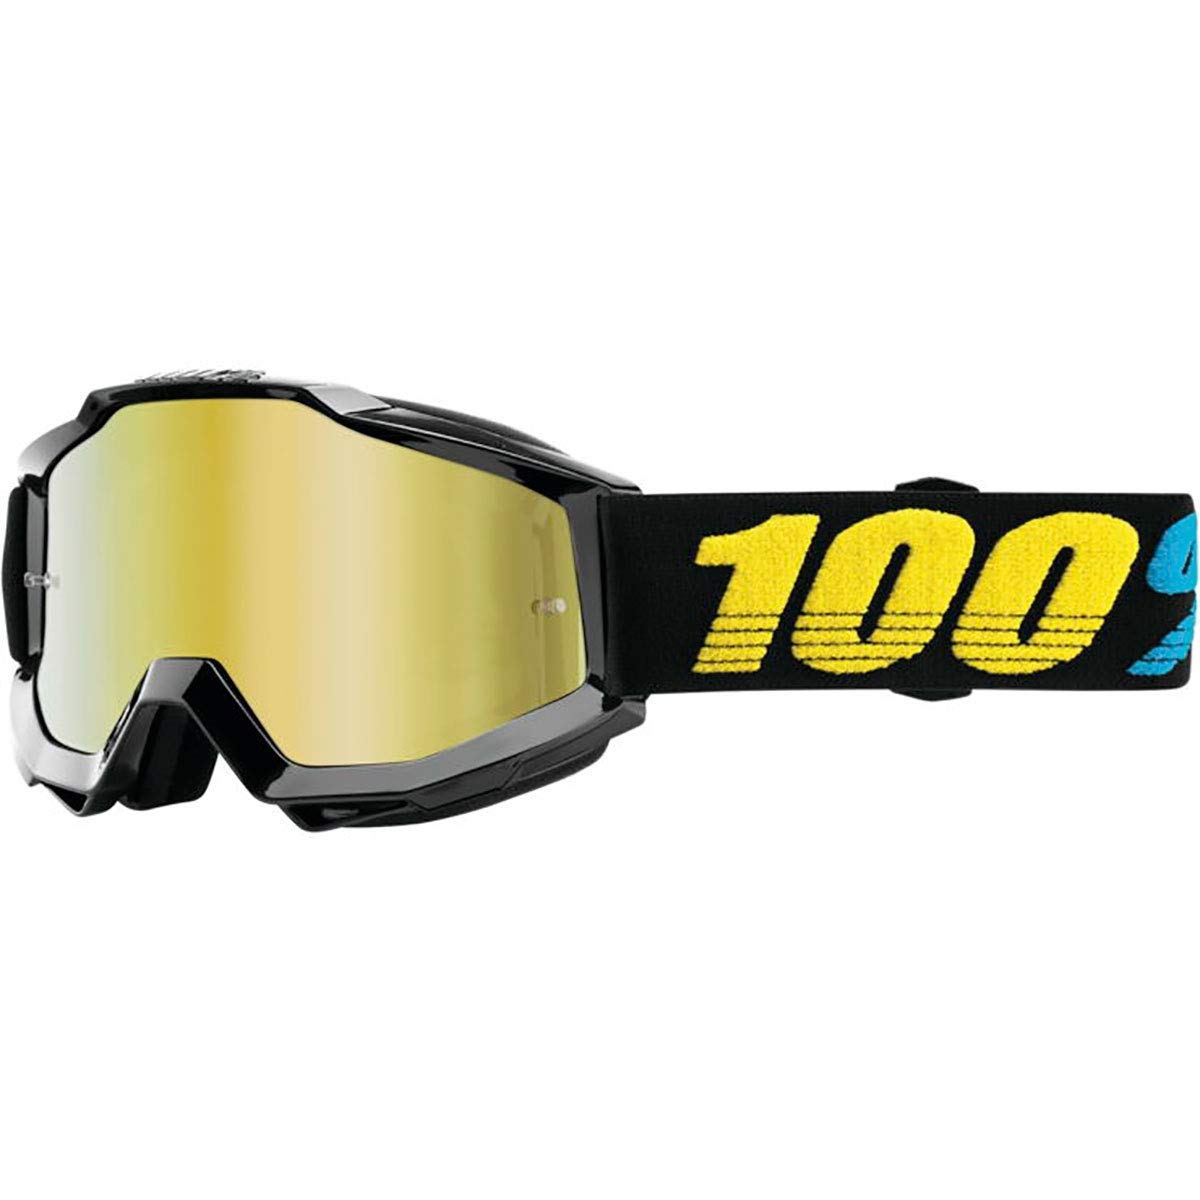 100% Accuri Goggles - Mirrored Lens (Virgo/Gold Lens) by 100%